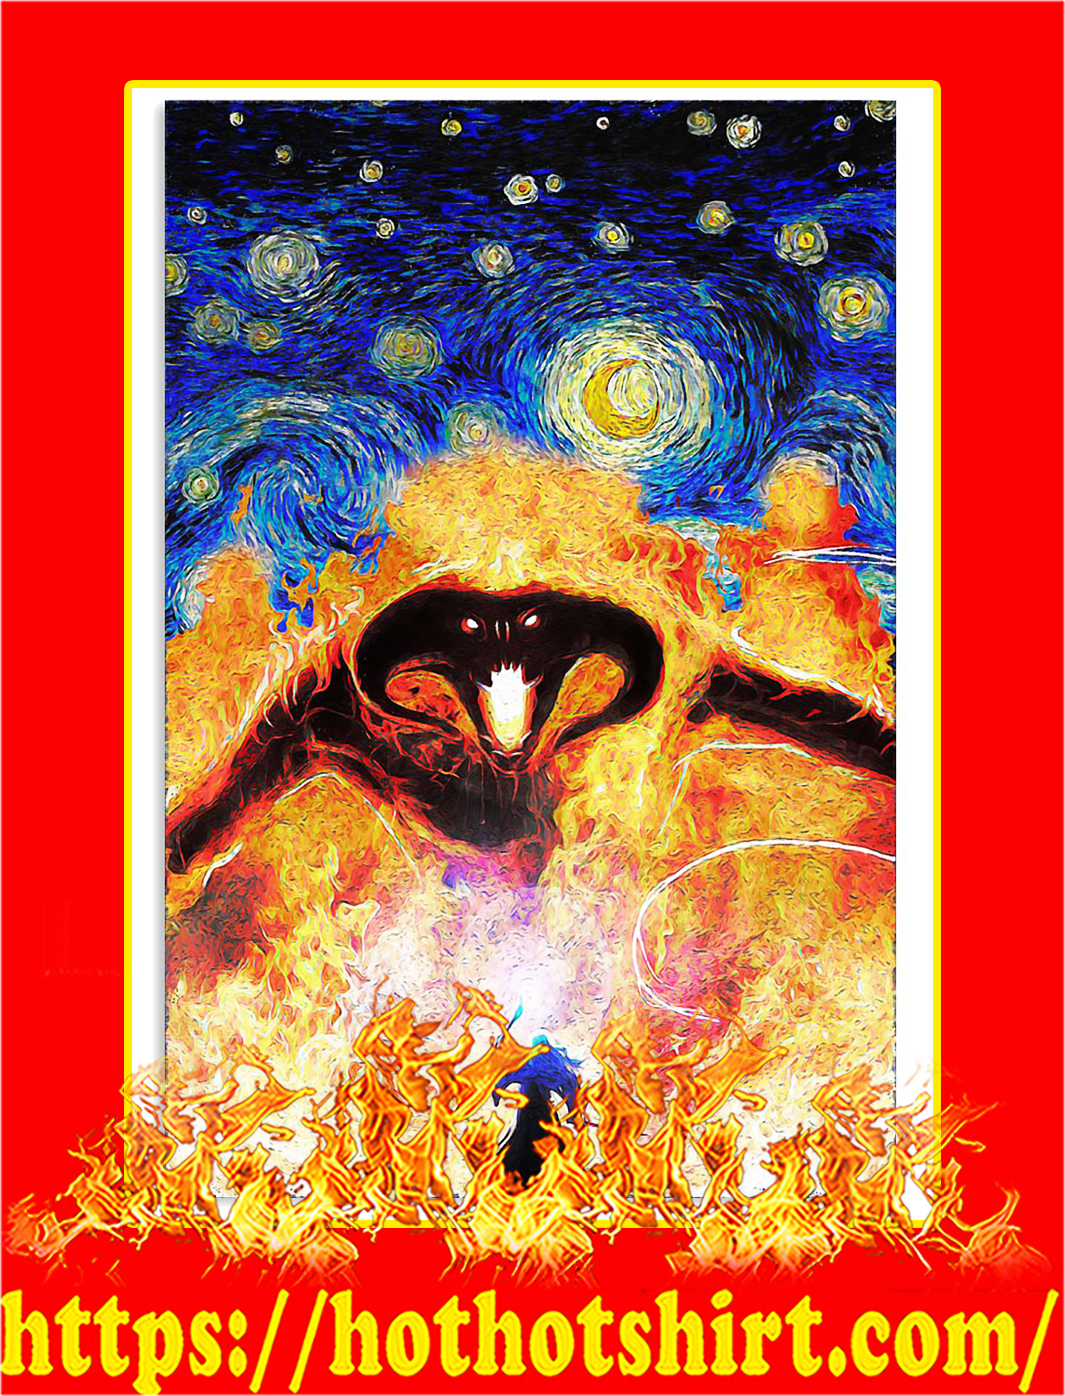 Balrog LOTR fire demon starry night poster - A3